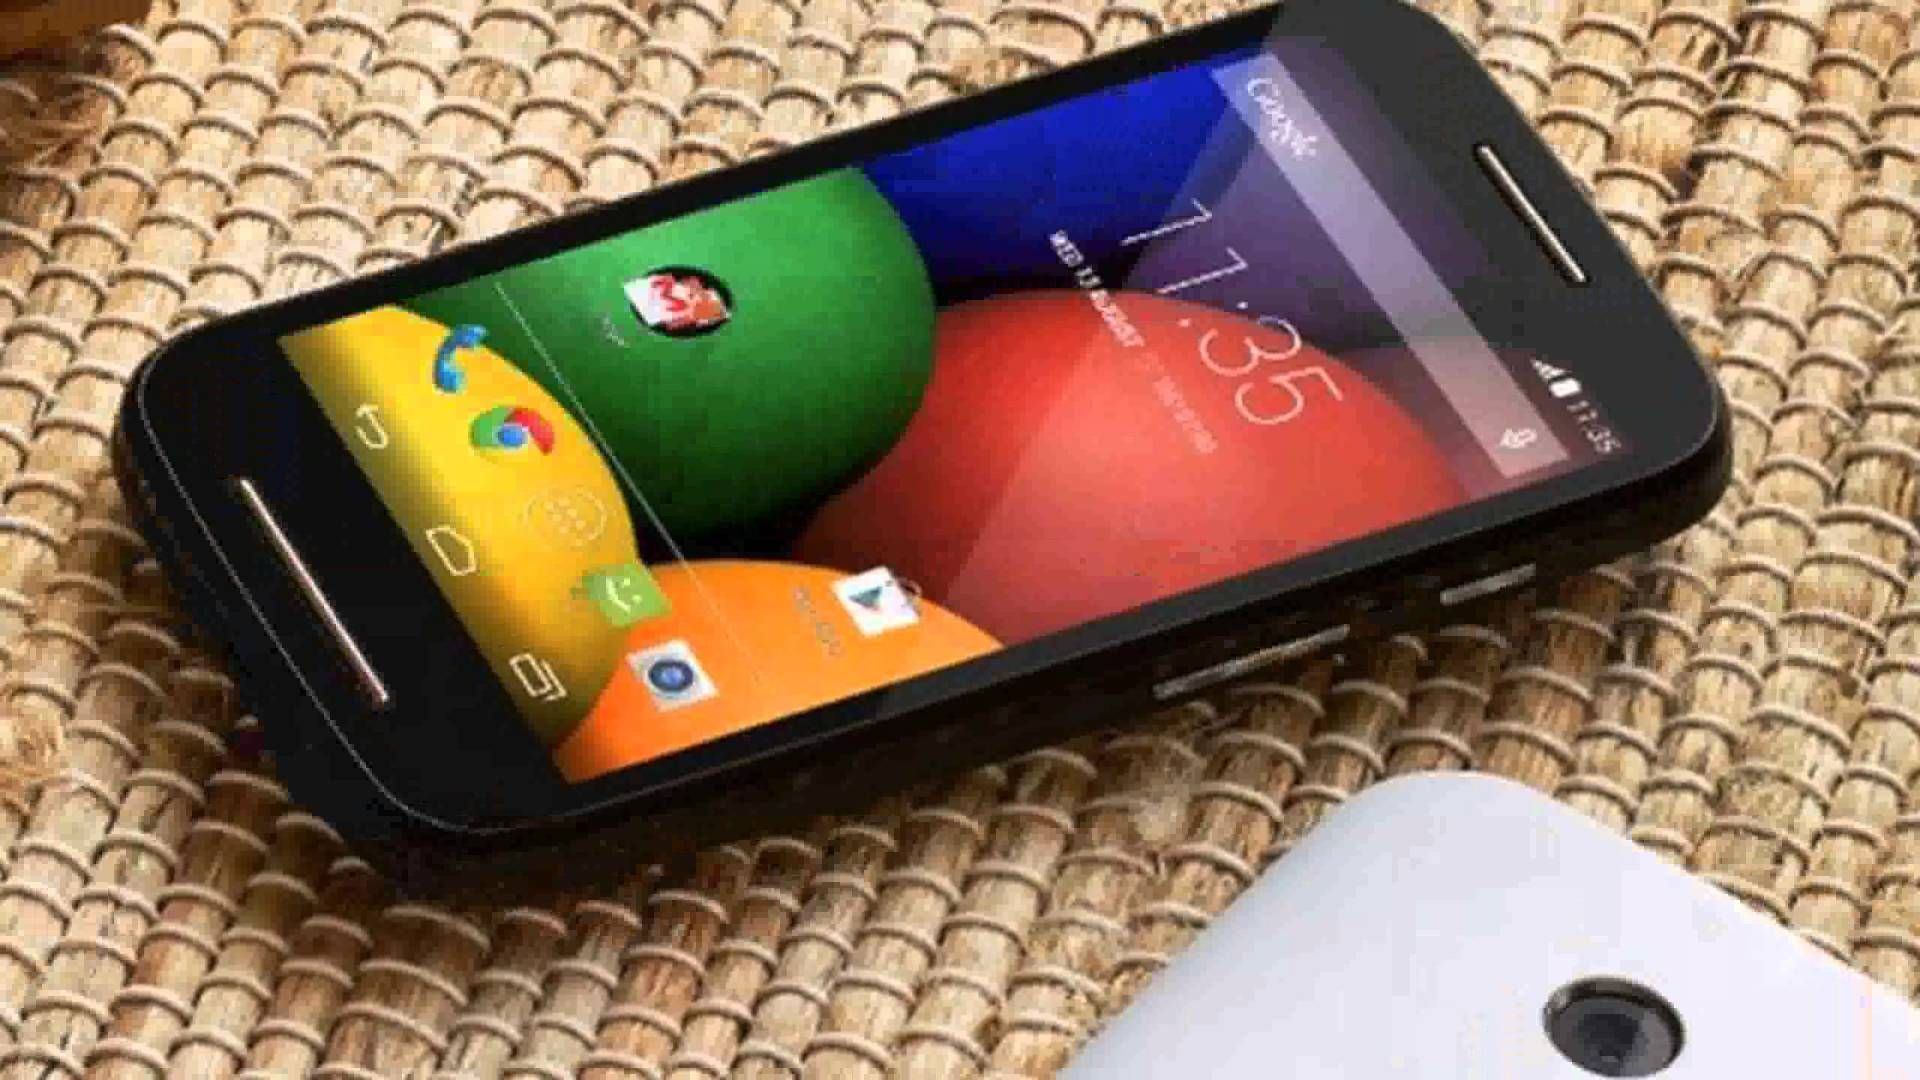 cool LG G3 iPhone 6 phones of the Year by GSMA at MWC & Moto 360 Check more at http://gadgetsnetworks.com/lg-g3-iphone-6-phones-of-the-year-by-gsma-at-mwc-moto-360/